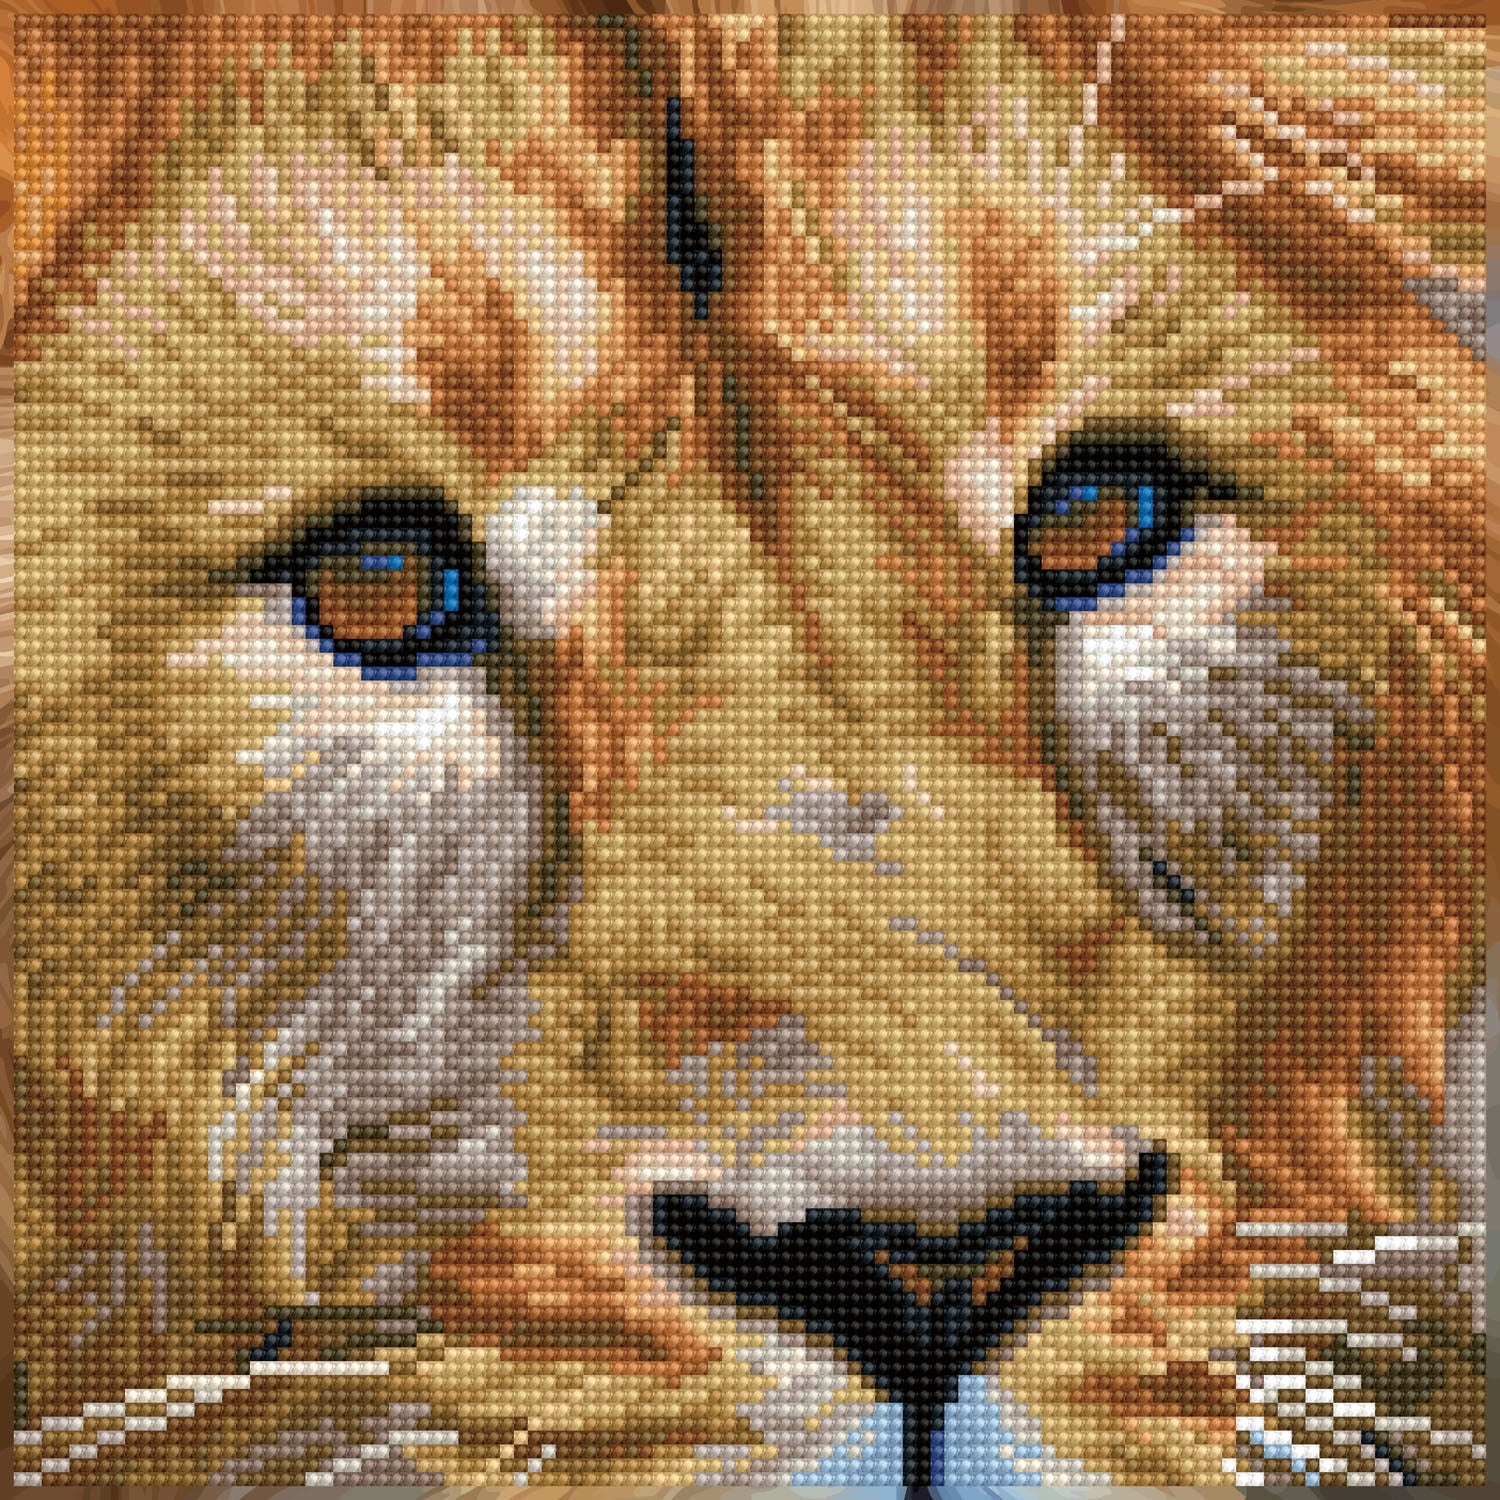 Diamond Painting Dieren